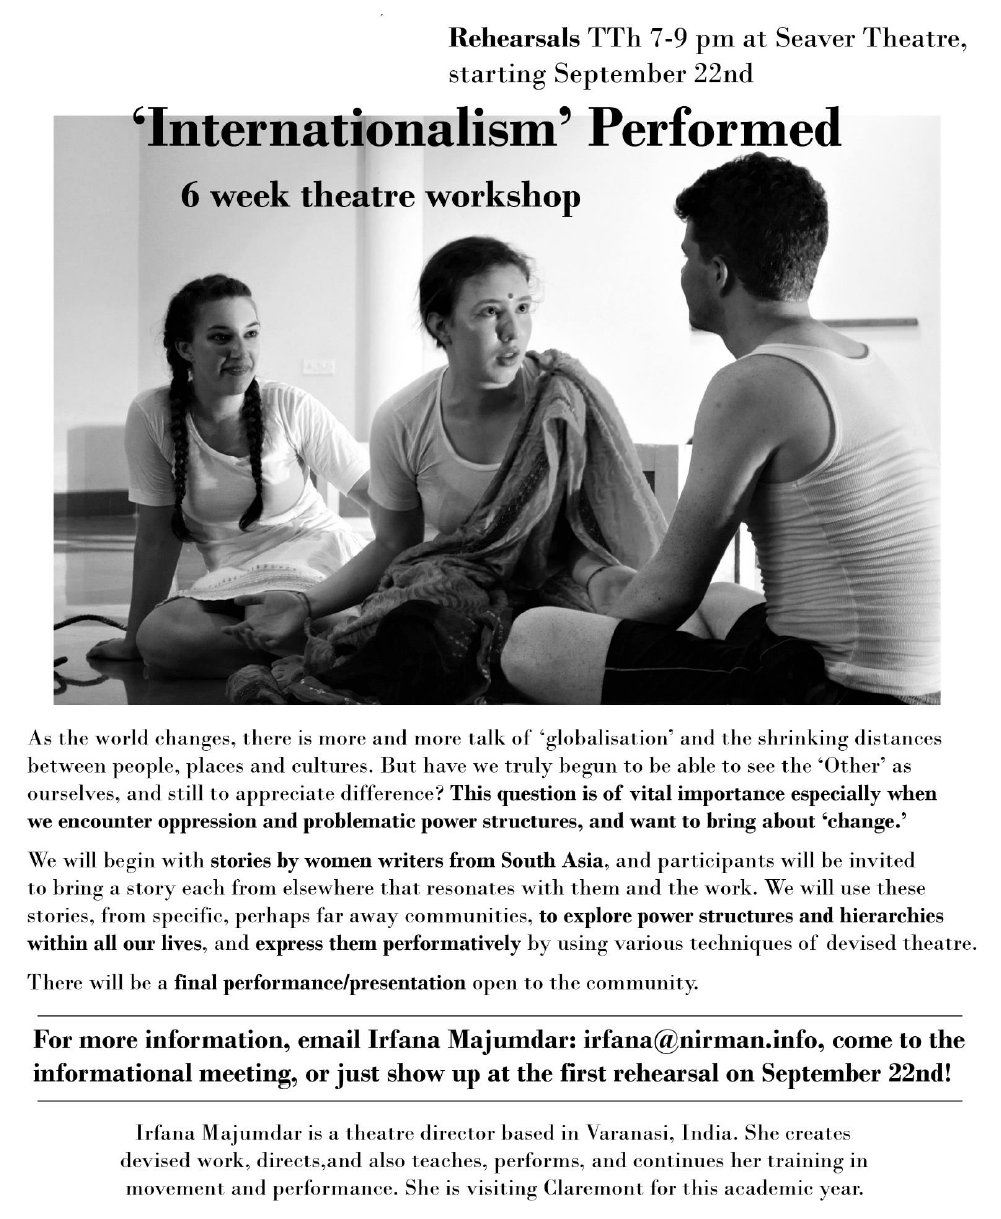 'Internationalism' Performed: 6 week theater workshop